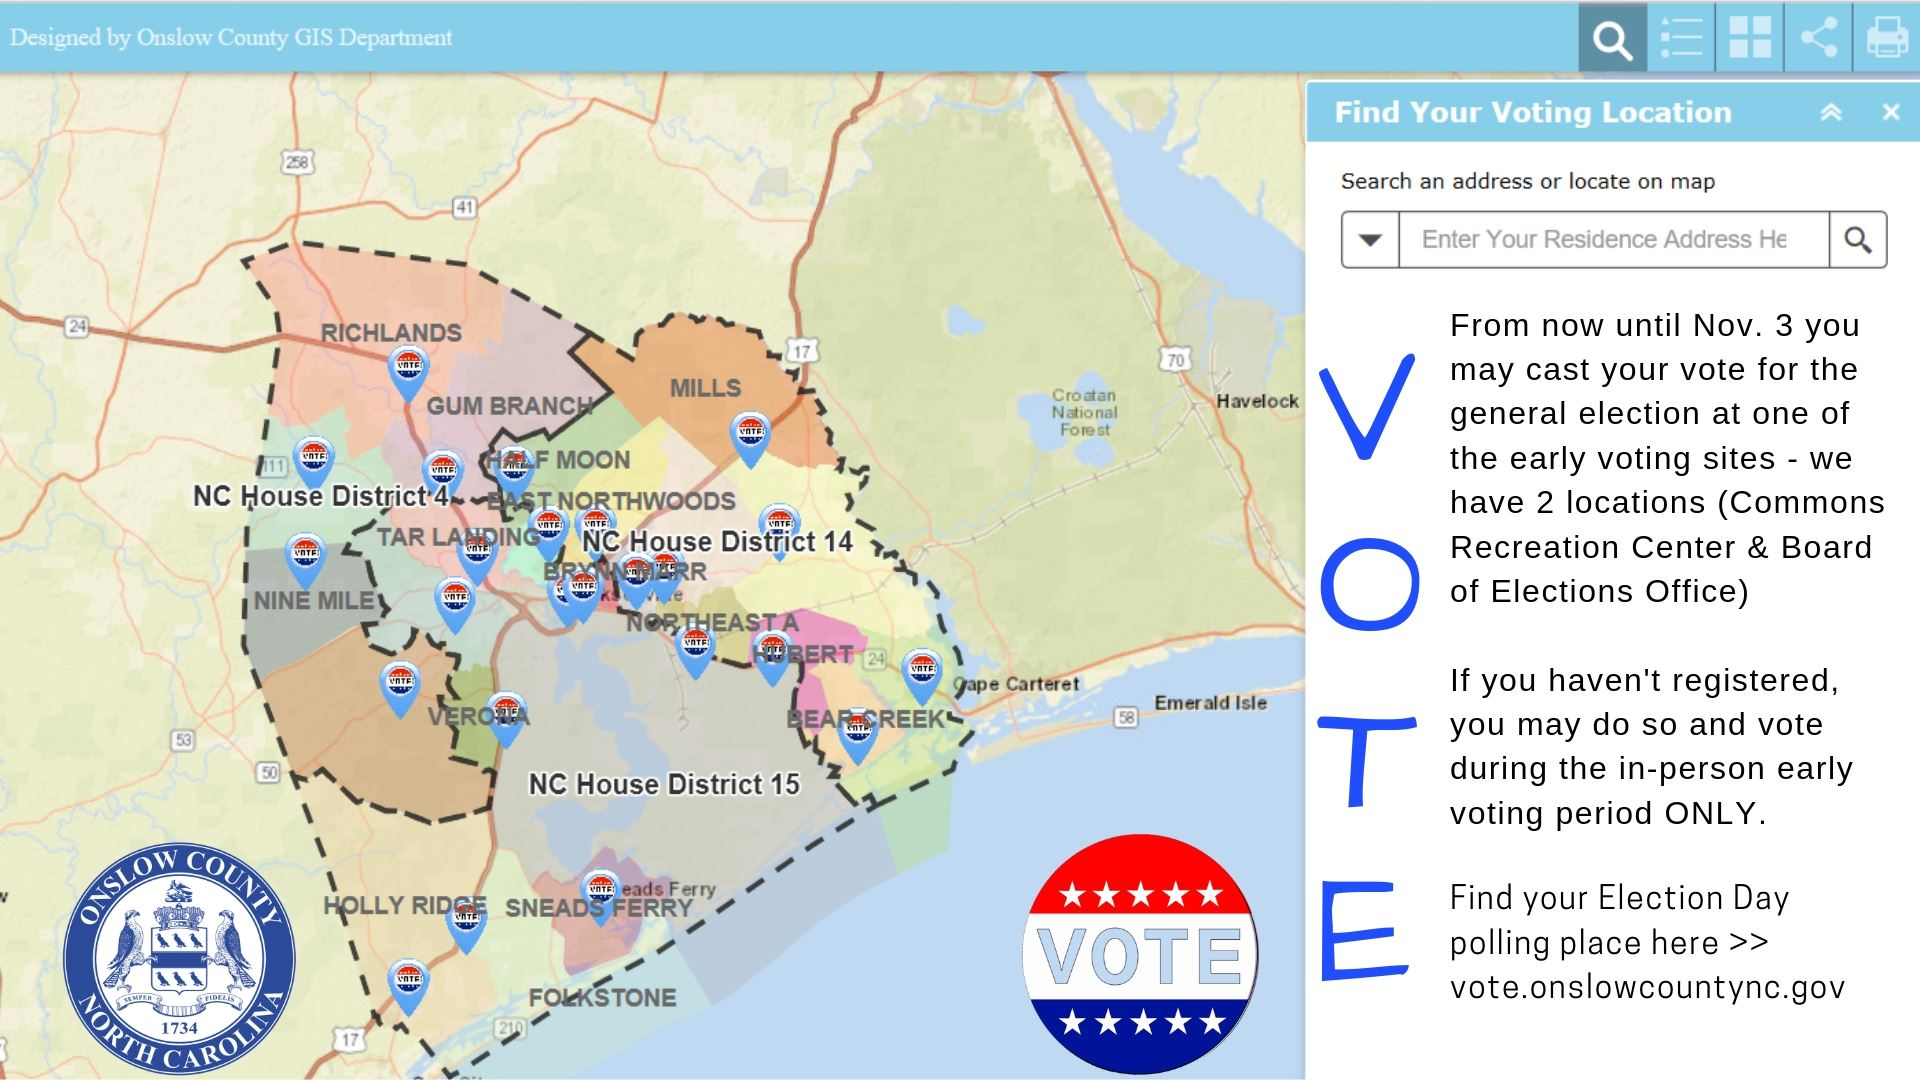 Find Your Voting Polling Place